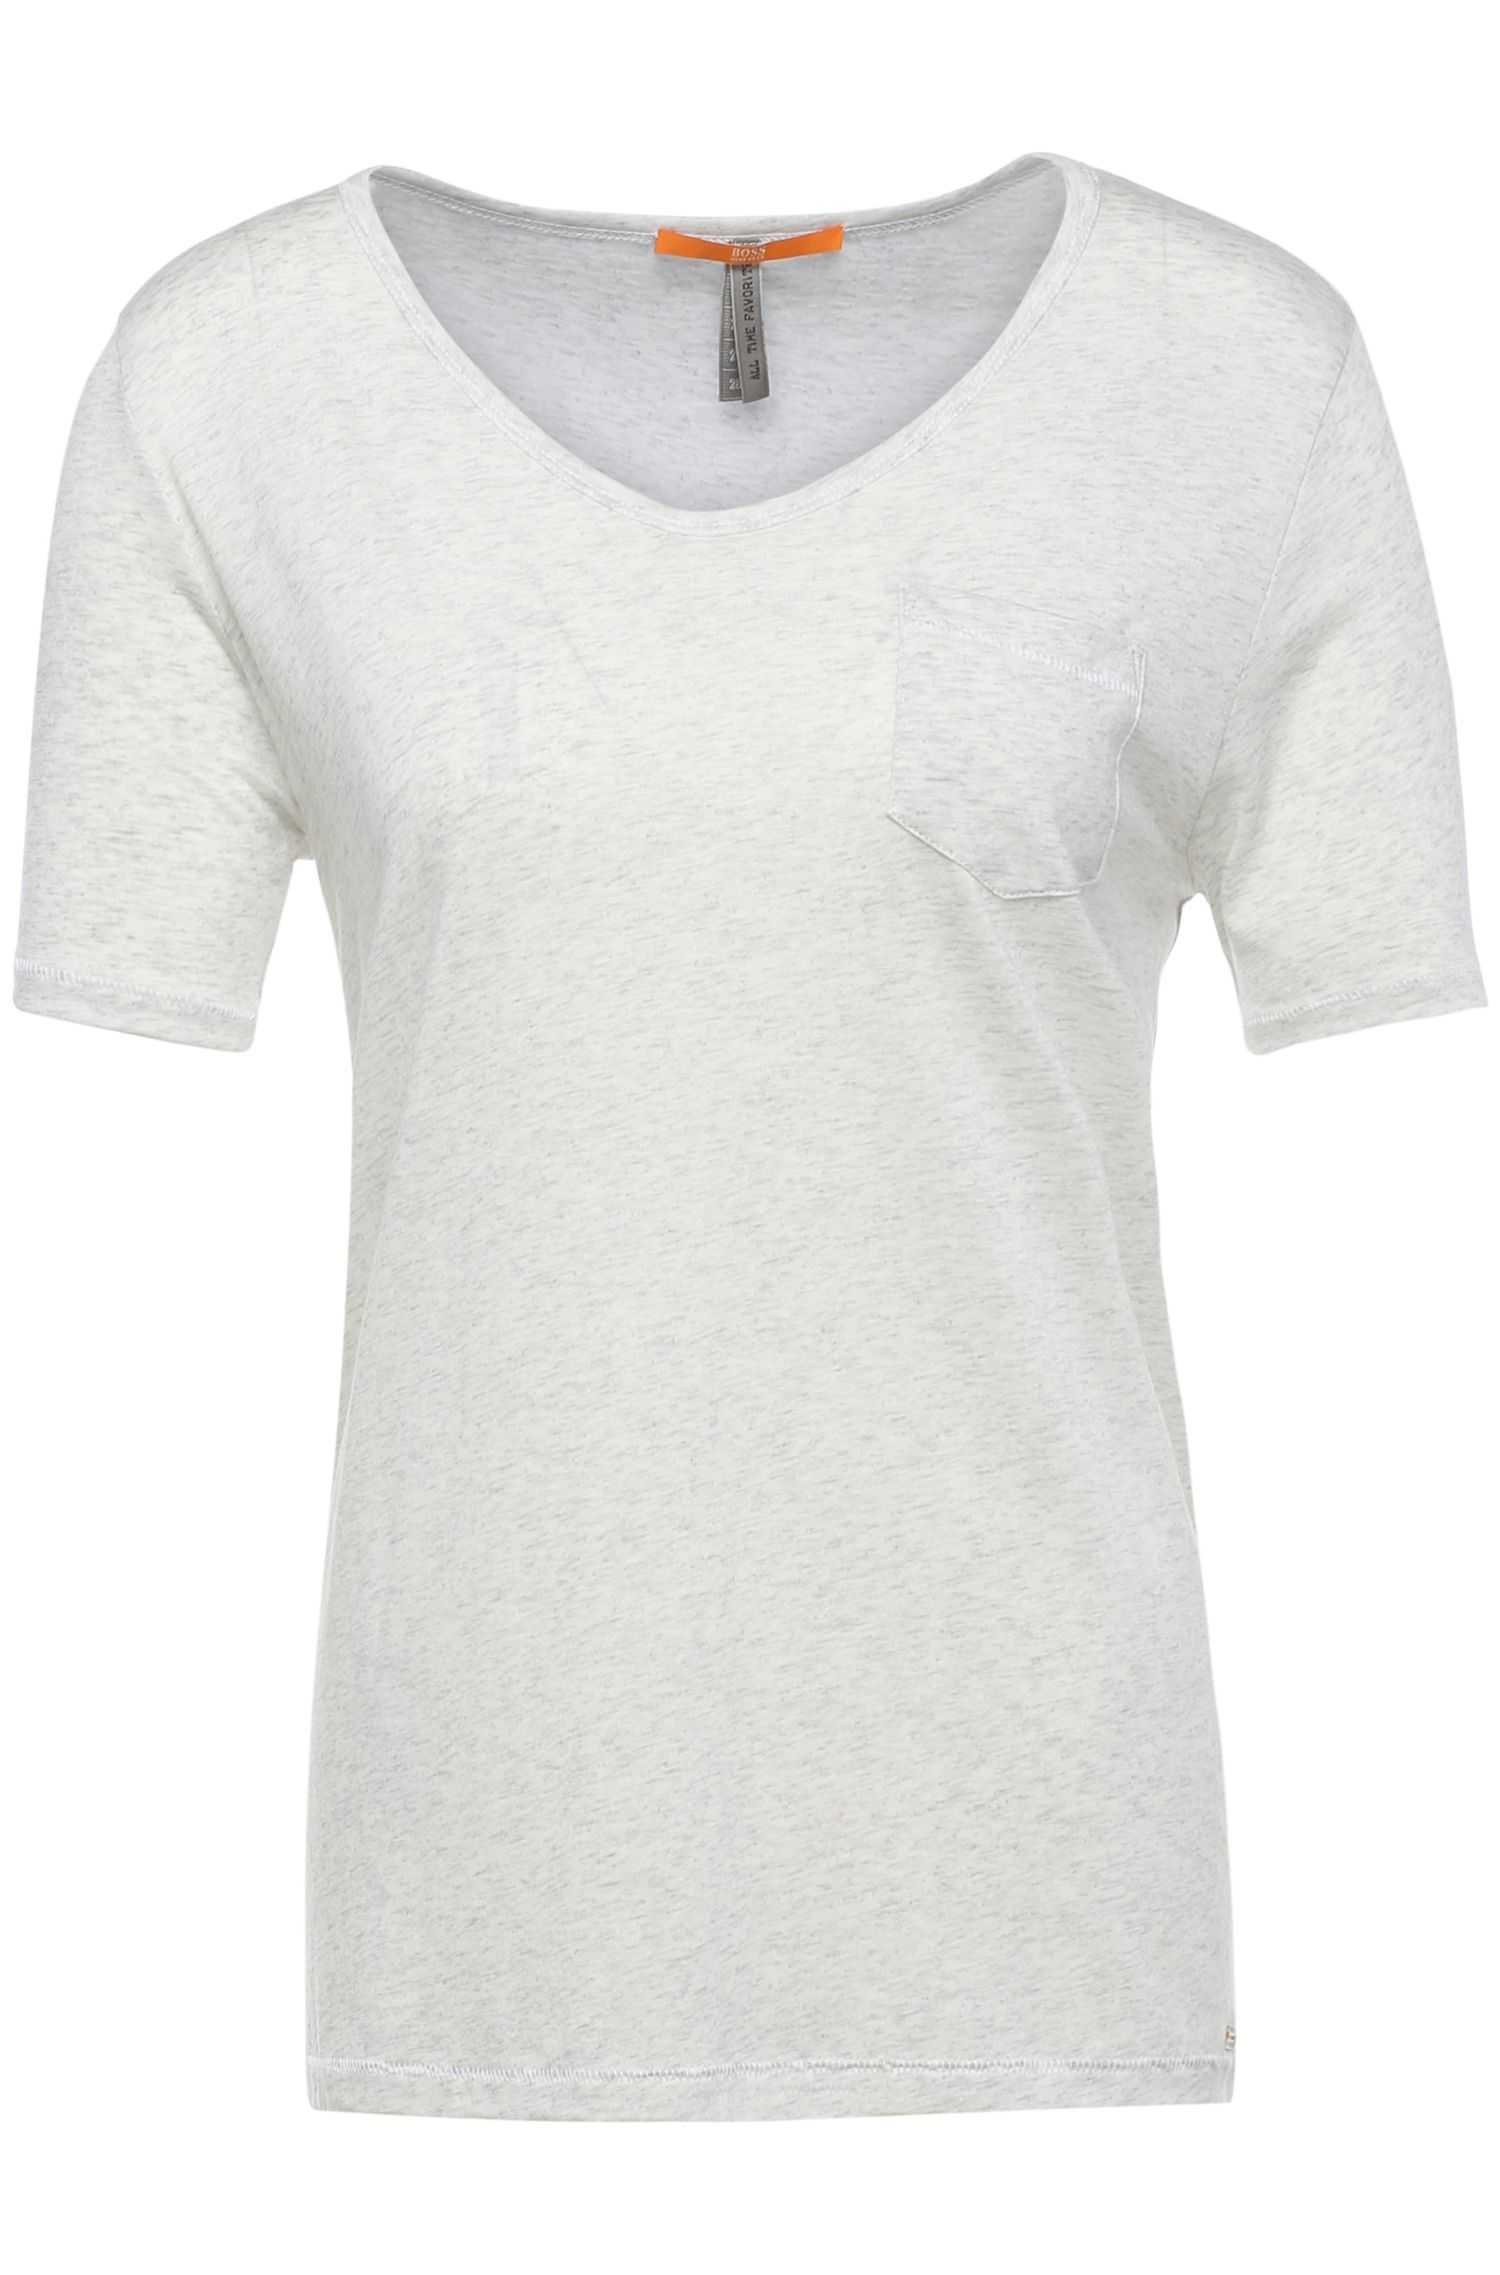 Regular-fit t-shirt in fabric blend with cotton: 'Tafavorite'